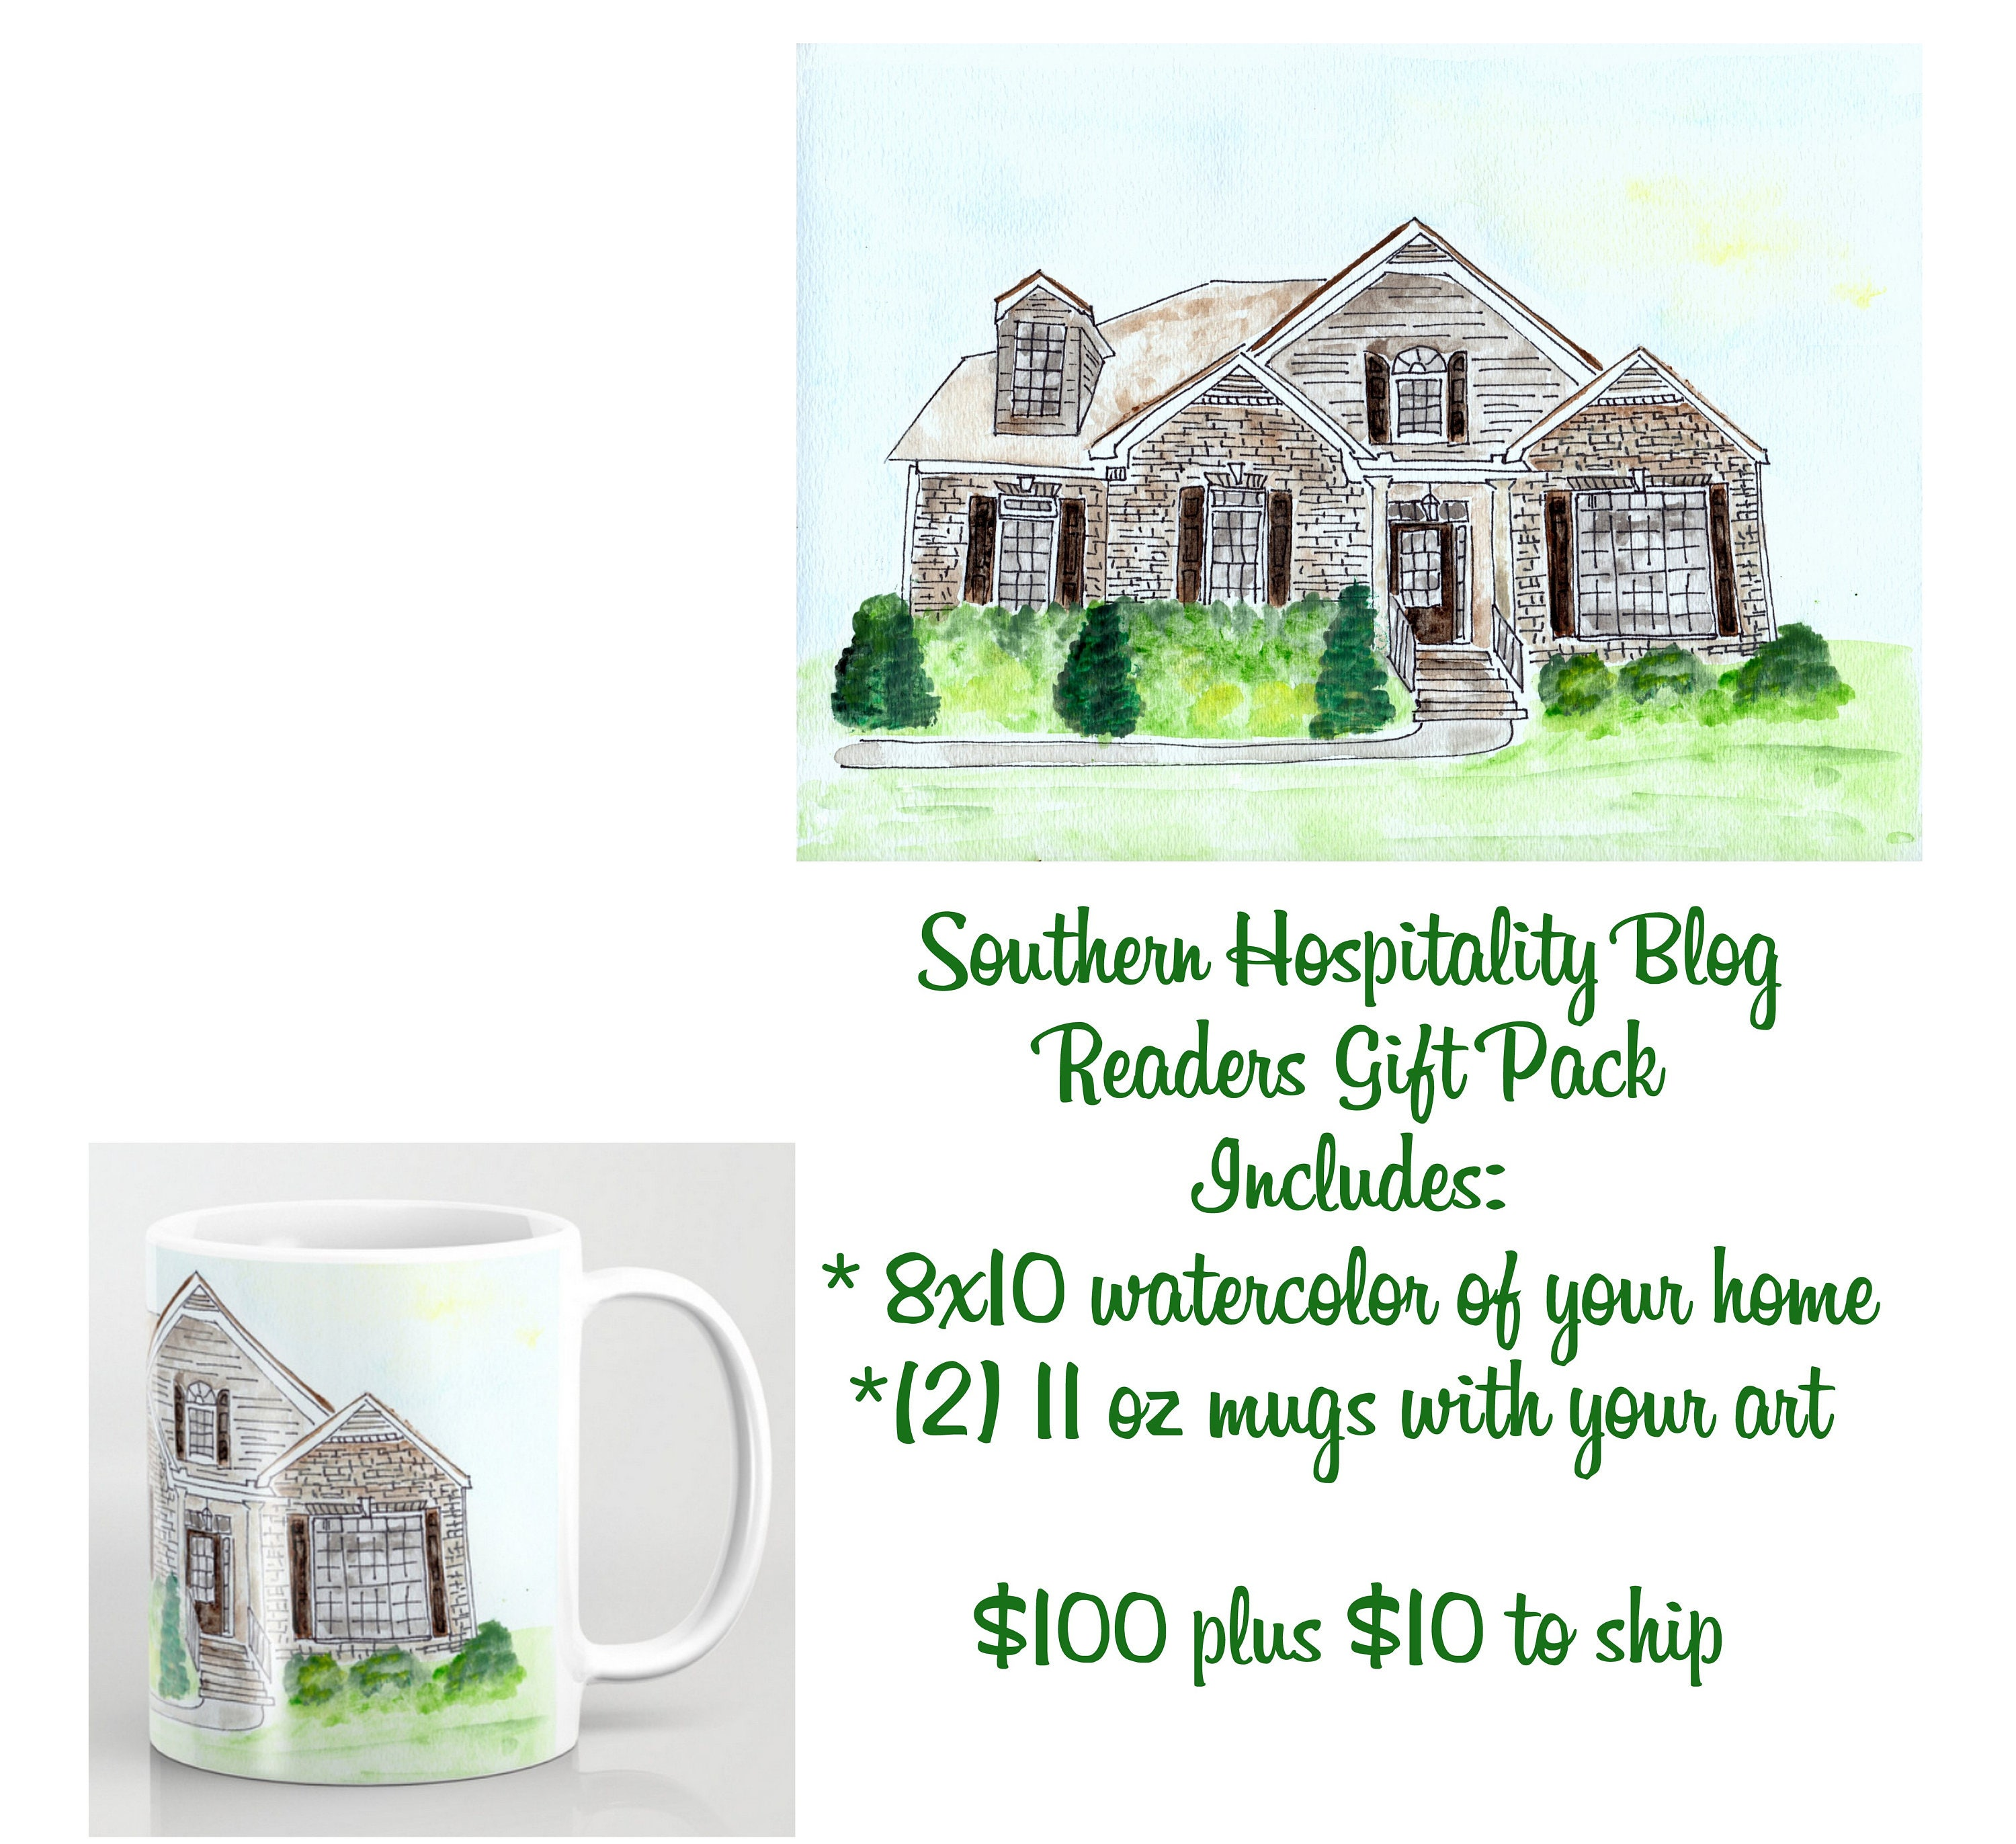 Southern Hospitality: Southern Hospitality Blog Reader Gift Package